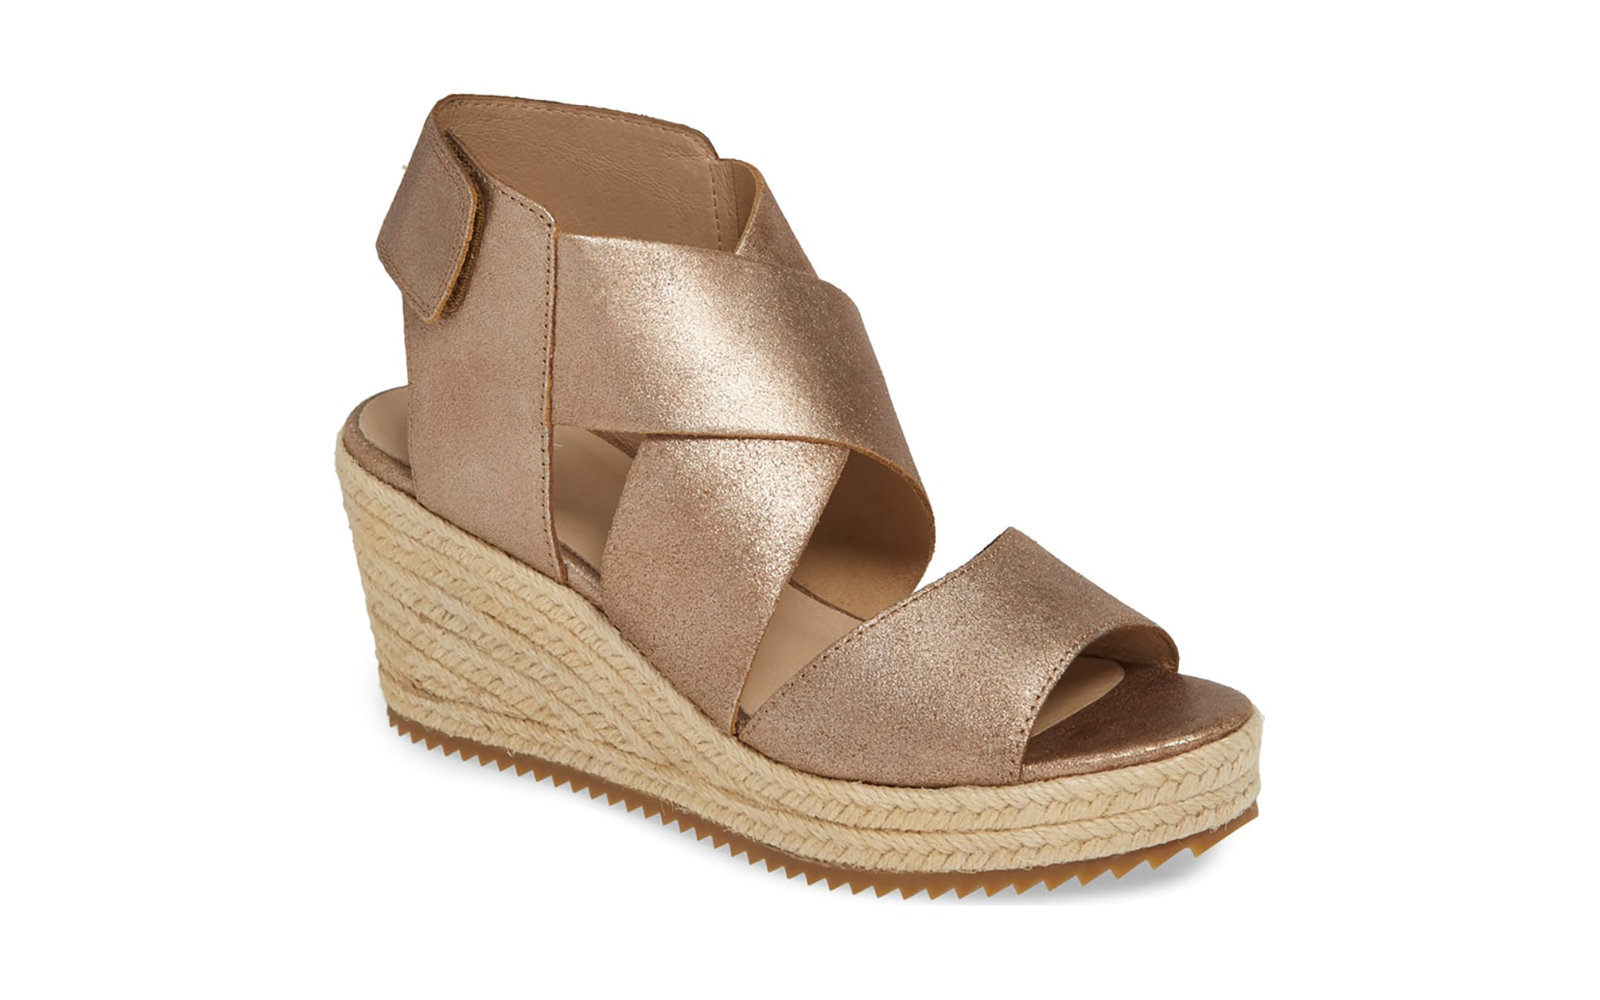 92d19cbba4 Most Comfortable Strappy Wedge: Eileen Fisher Willow Espadrille Wedge Sandal